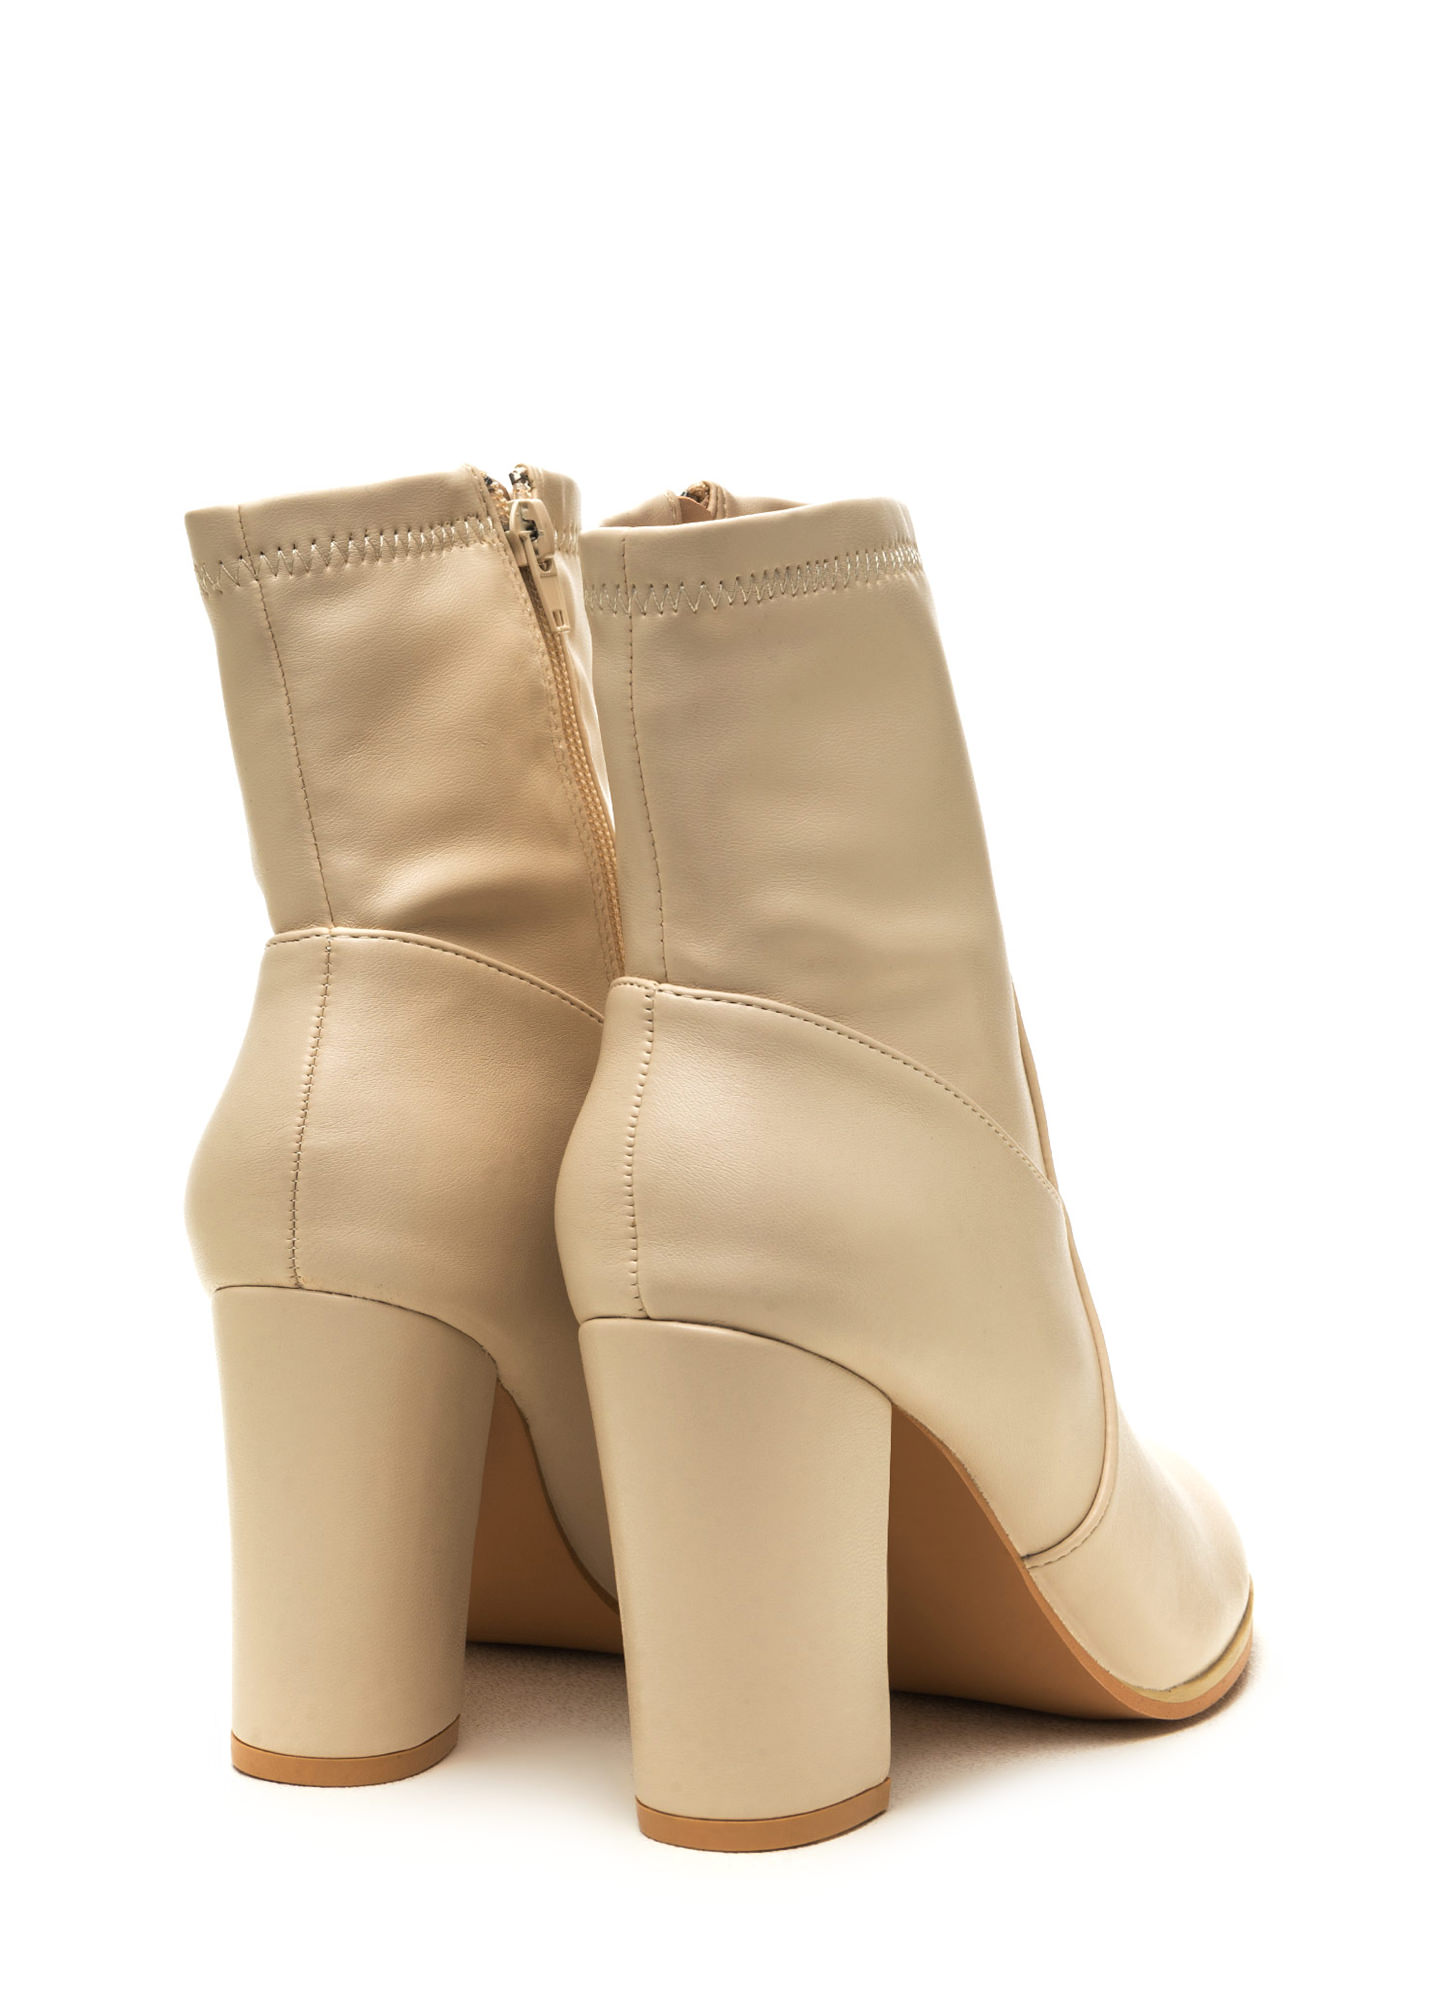 Swaggy Strut Chunky Faux Leather Booties NUDE